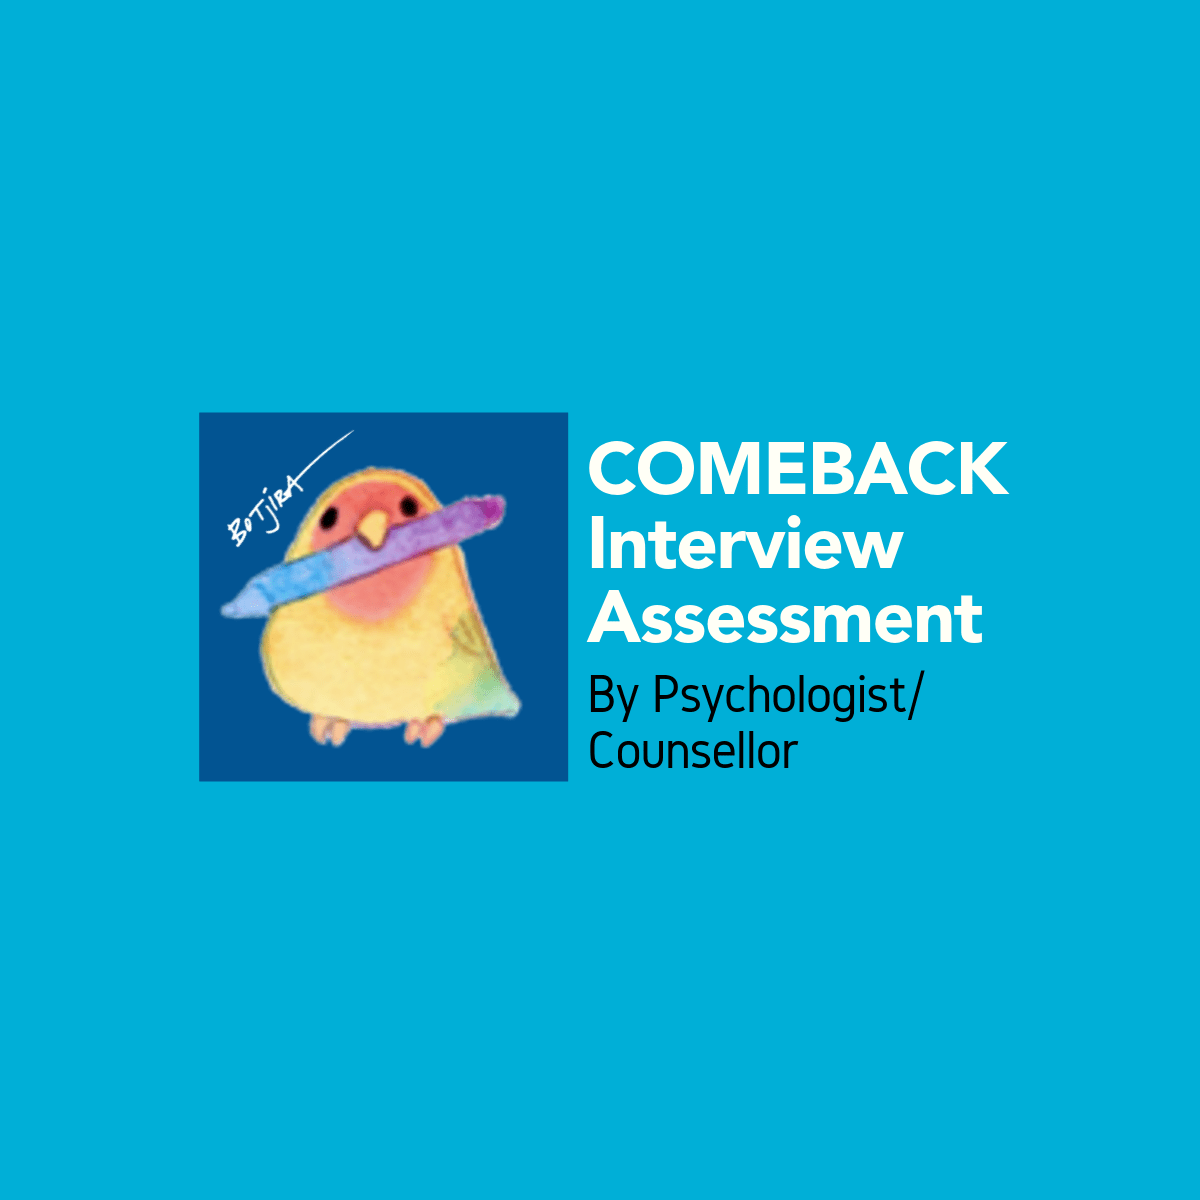 COMEBACK Interview Assessment